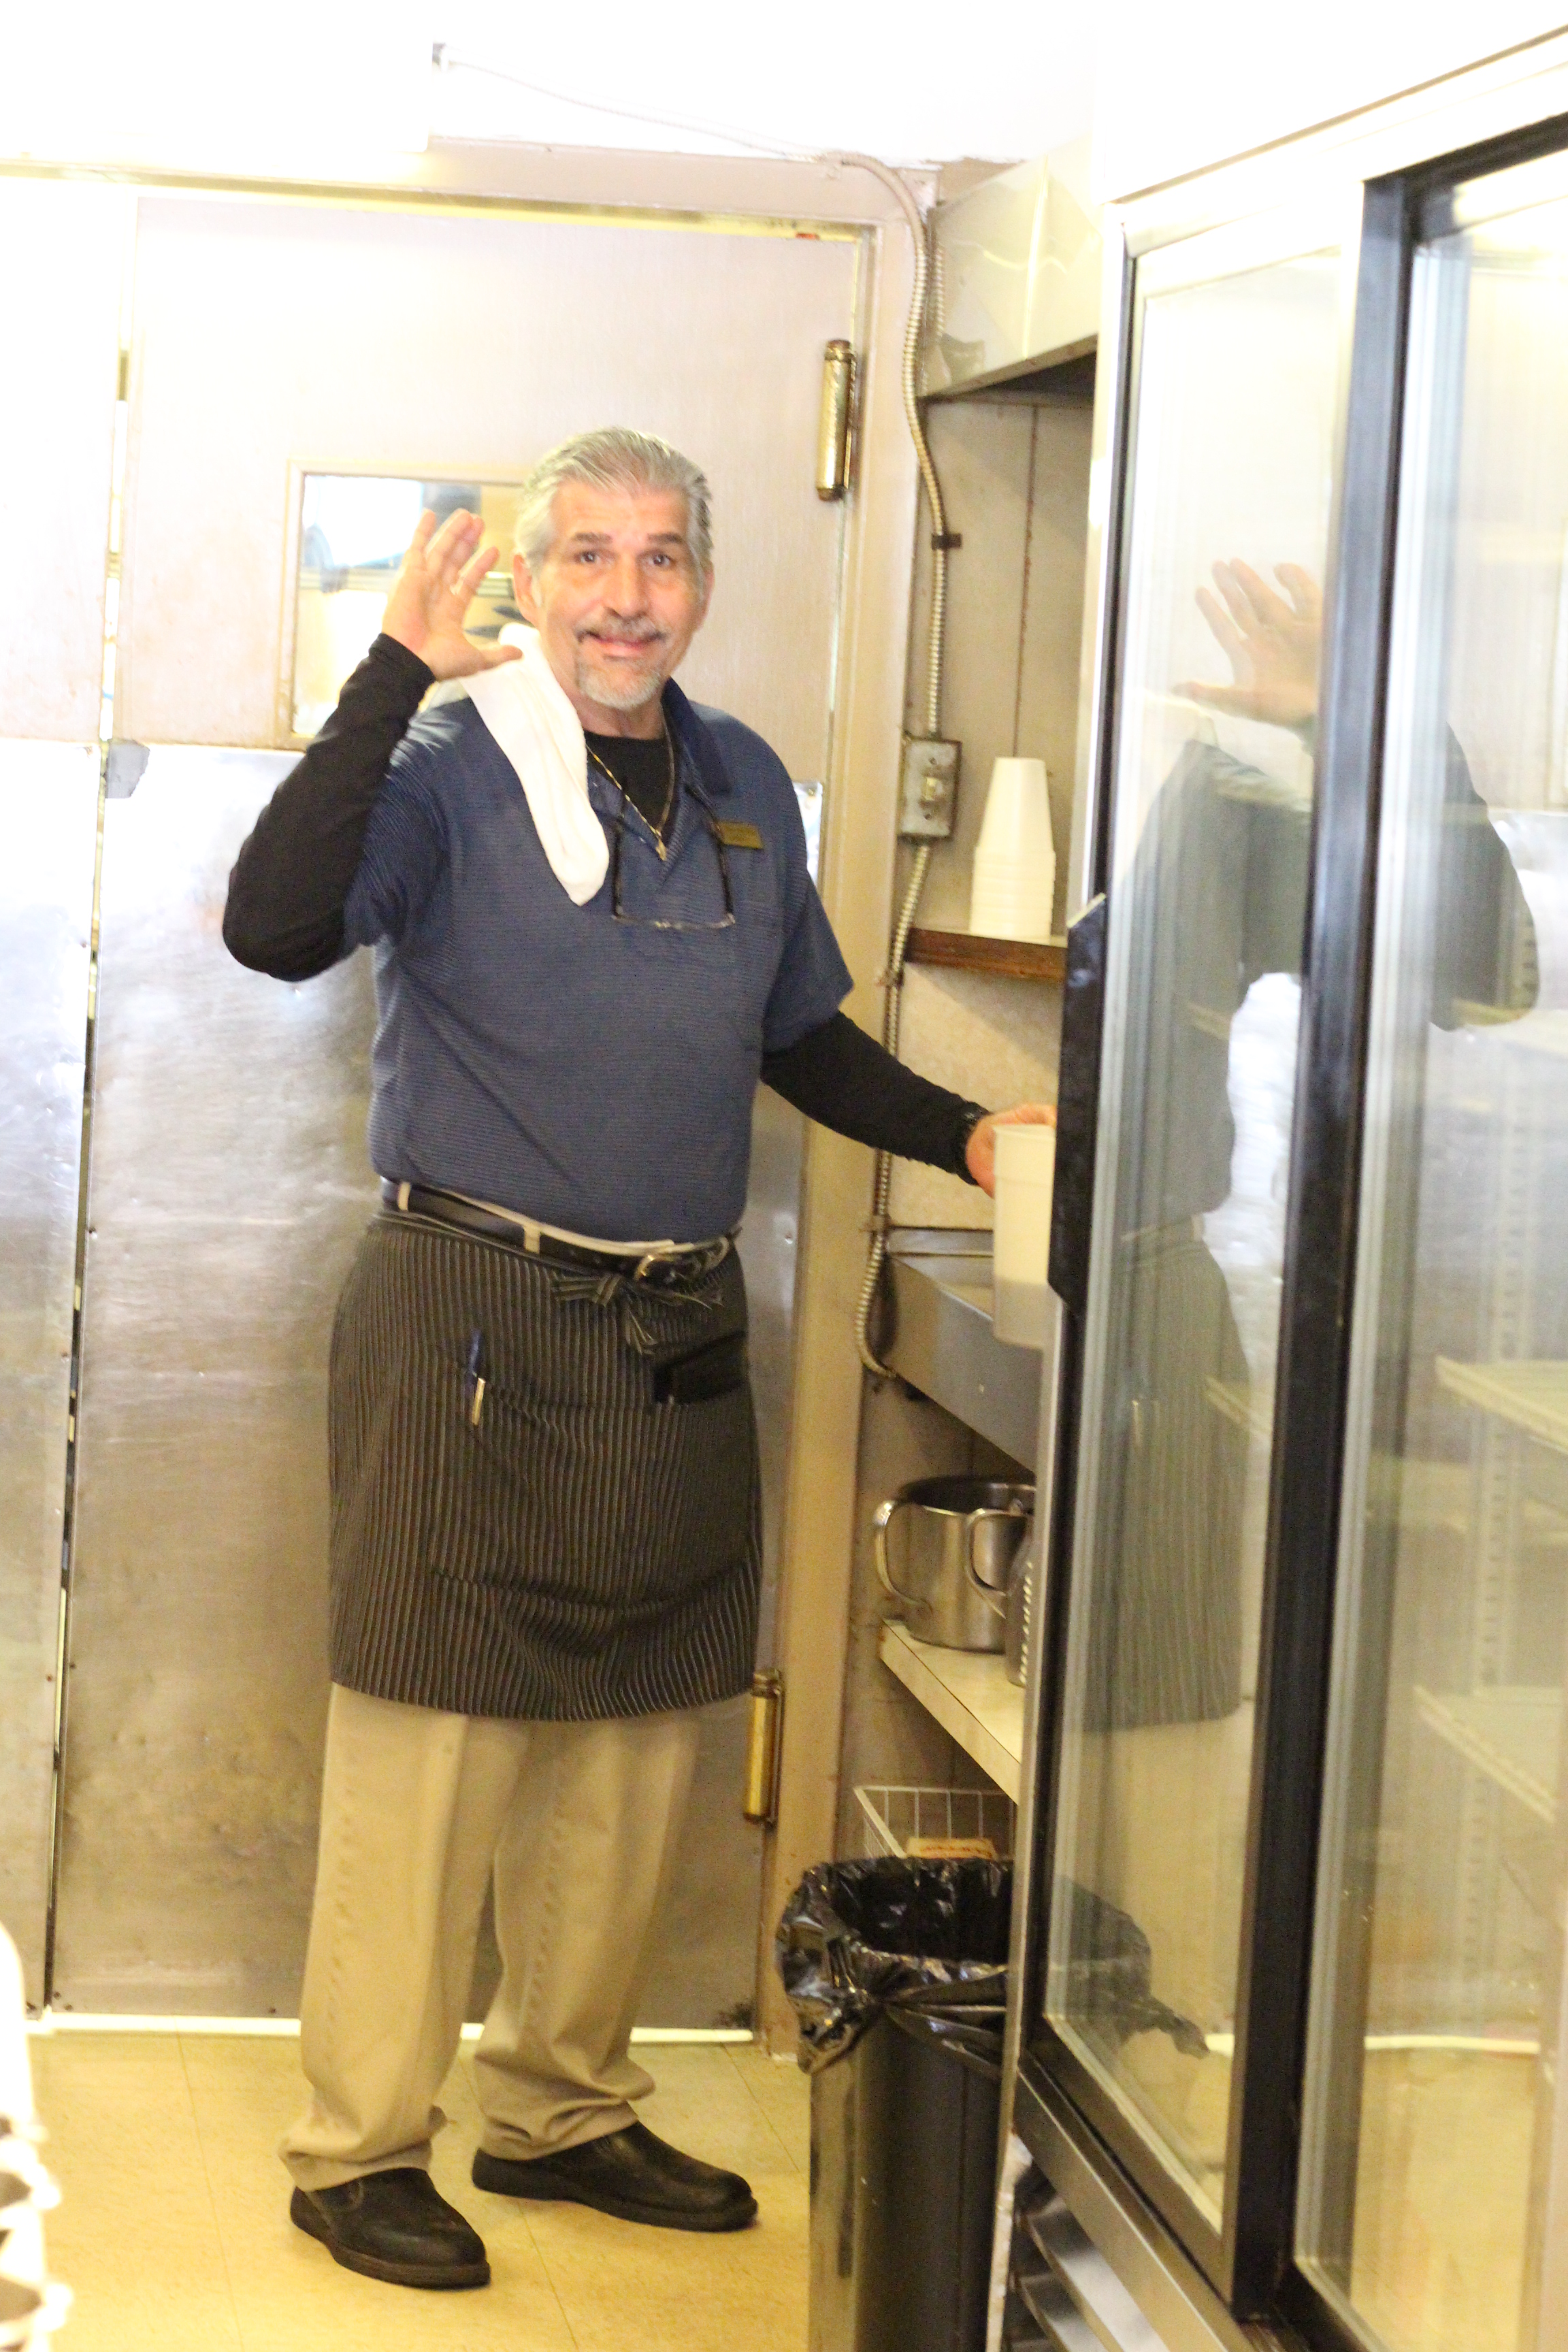 Robert's enthusiastic service comes with a smile.